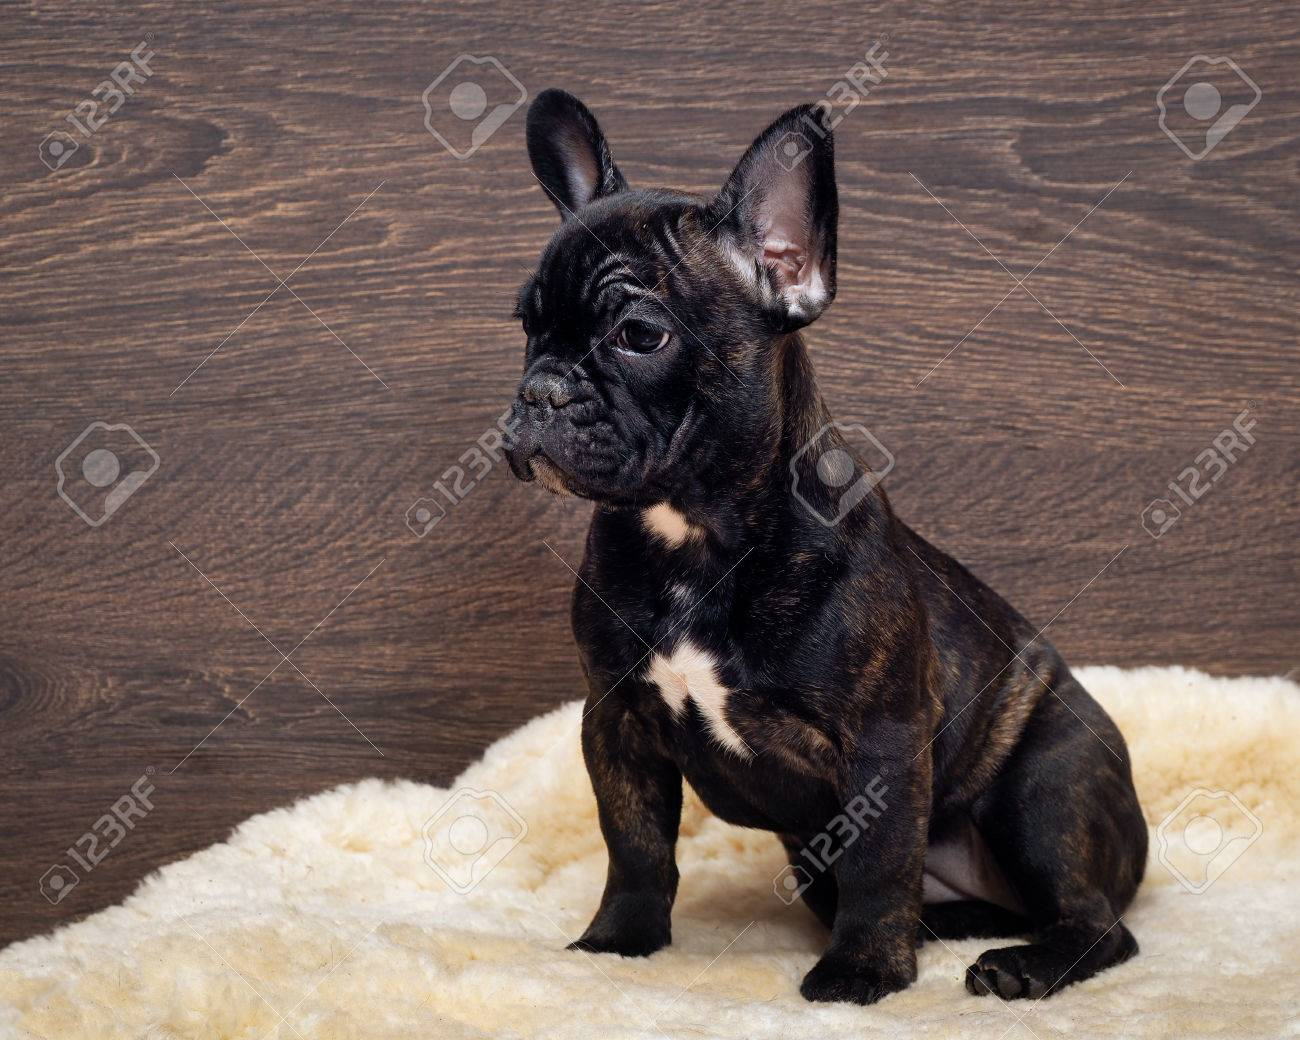 The Dog Sits At The Wooden Wall French Bulldog Puppy Color Stock